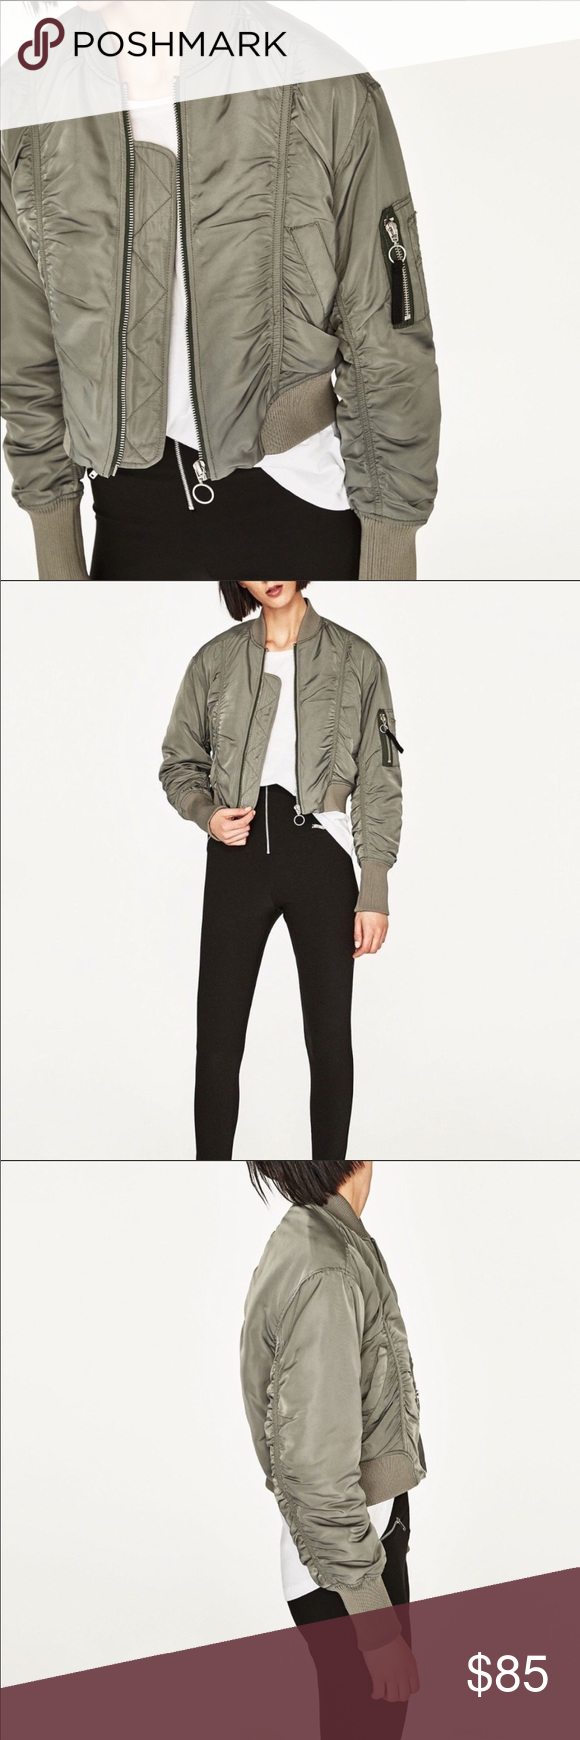 fead04ac8 NWT Zara cropped green bomber jacket Beautiful and prefect new with ...